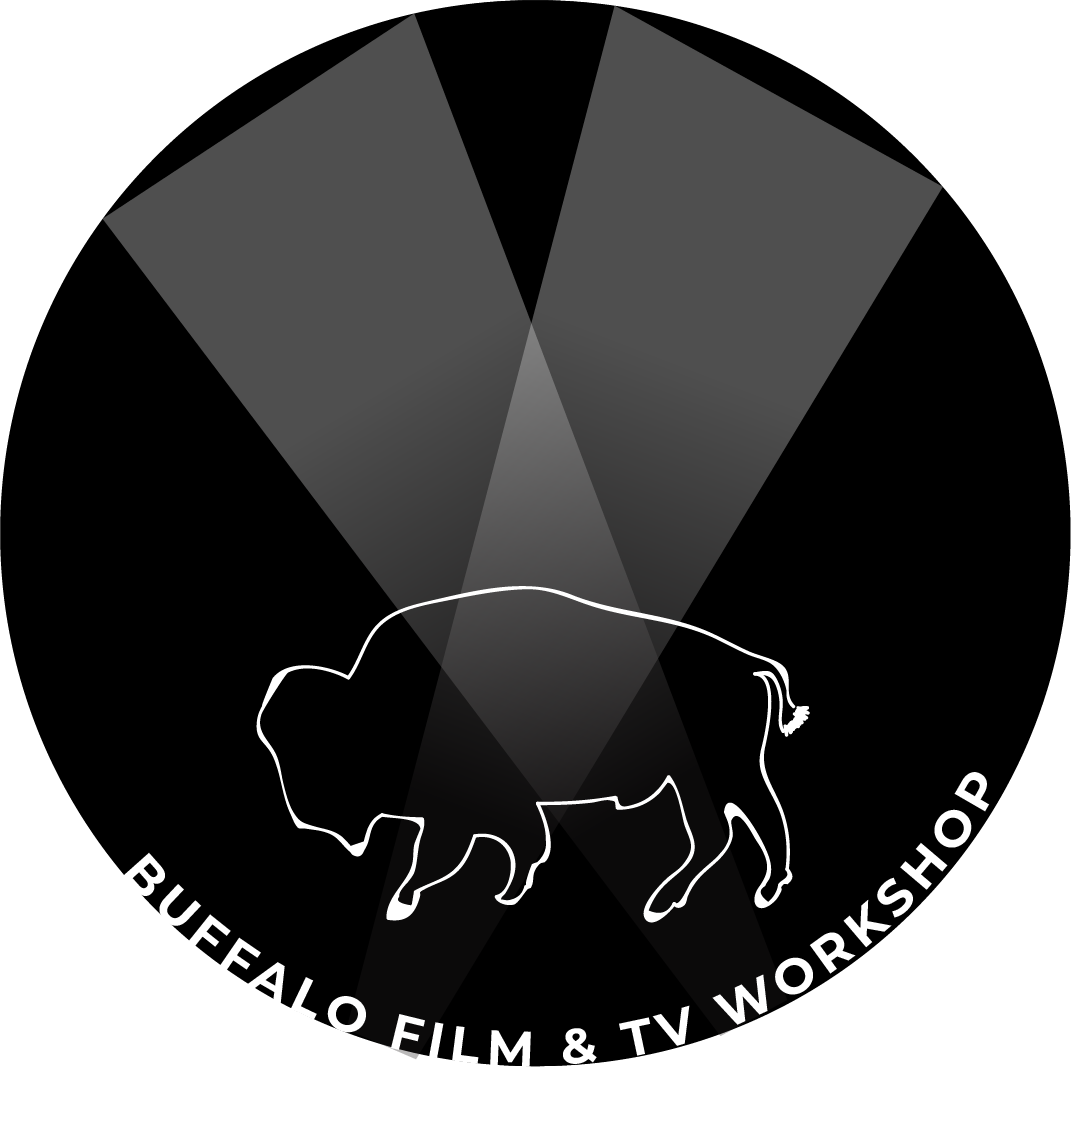 BUFFALO FILM & TV WORKSHOP